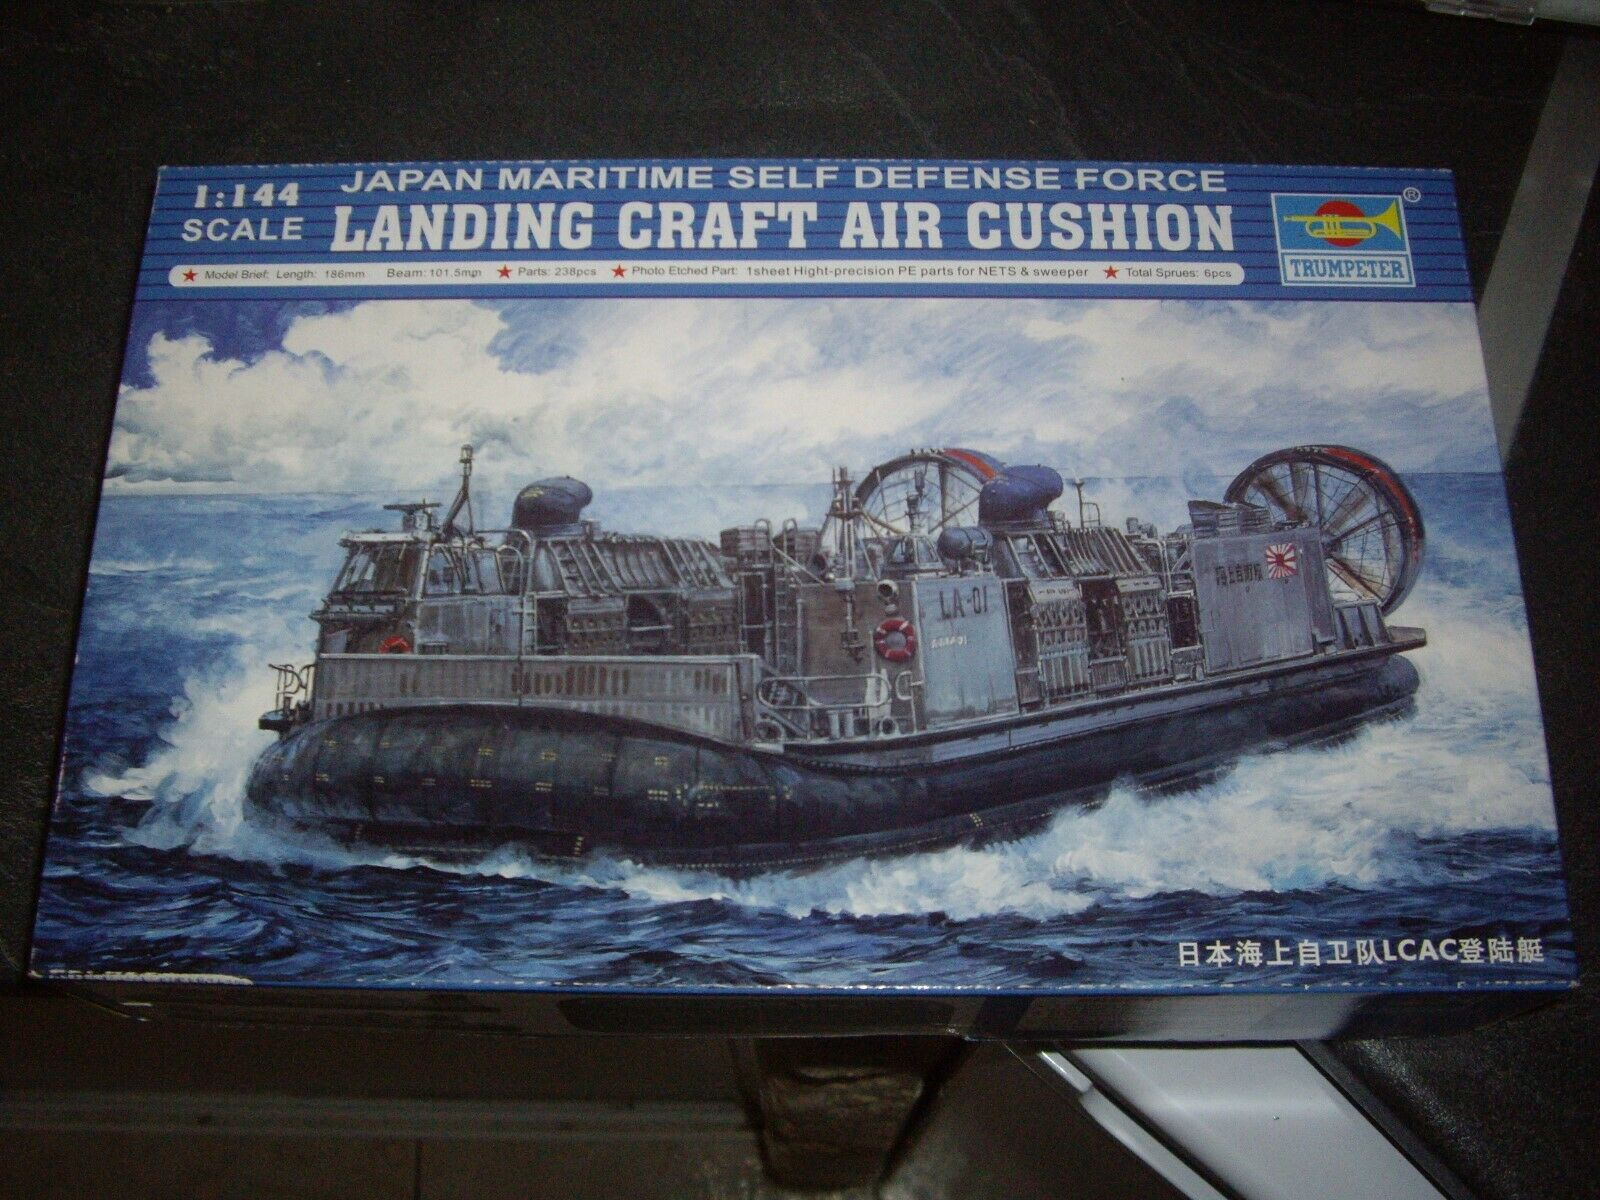 TRUMPETER JAPAN MARITIME DEFENSE FORC LANDING CRAFT AIR CUSHION  1 144 REF 00106